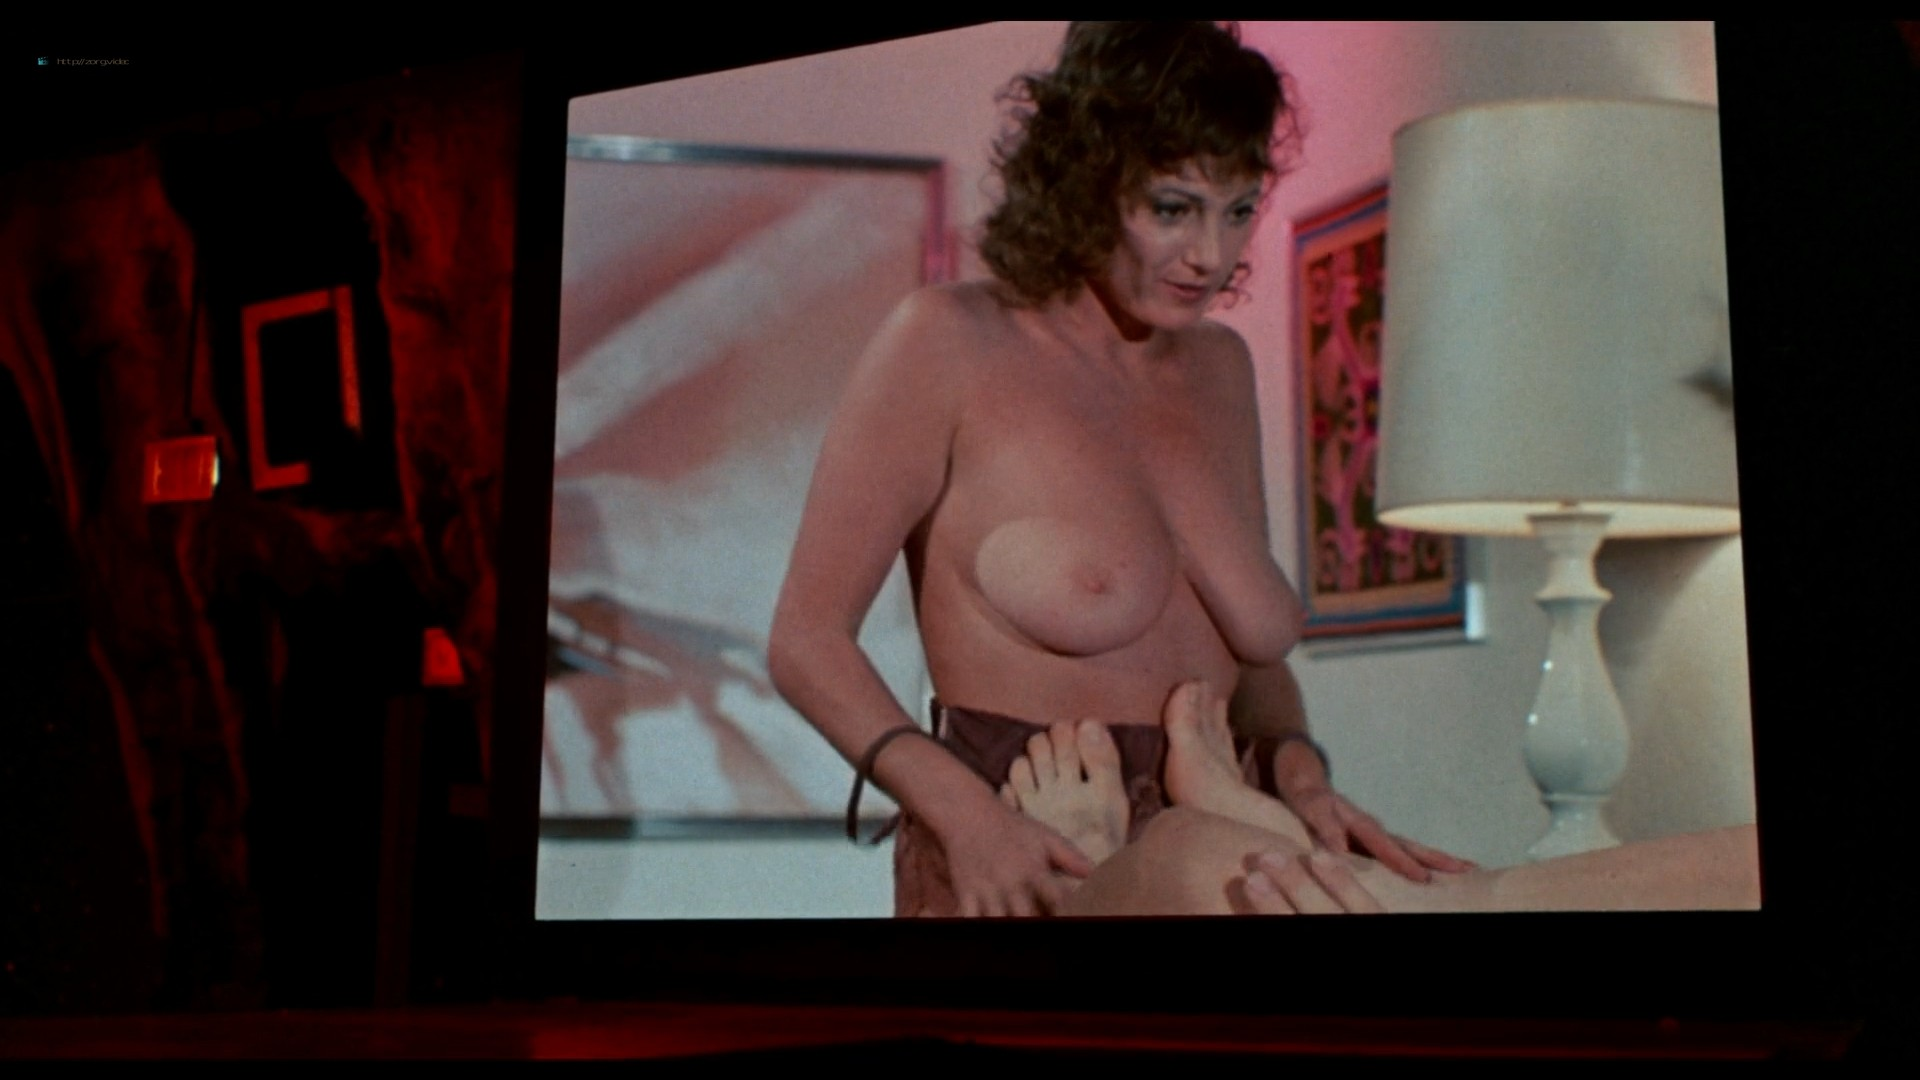 Graem McGavin nude Donna McDaniel and other's nude full frontal - Angel (1983) HD1080p BluRay (6)